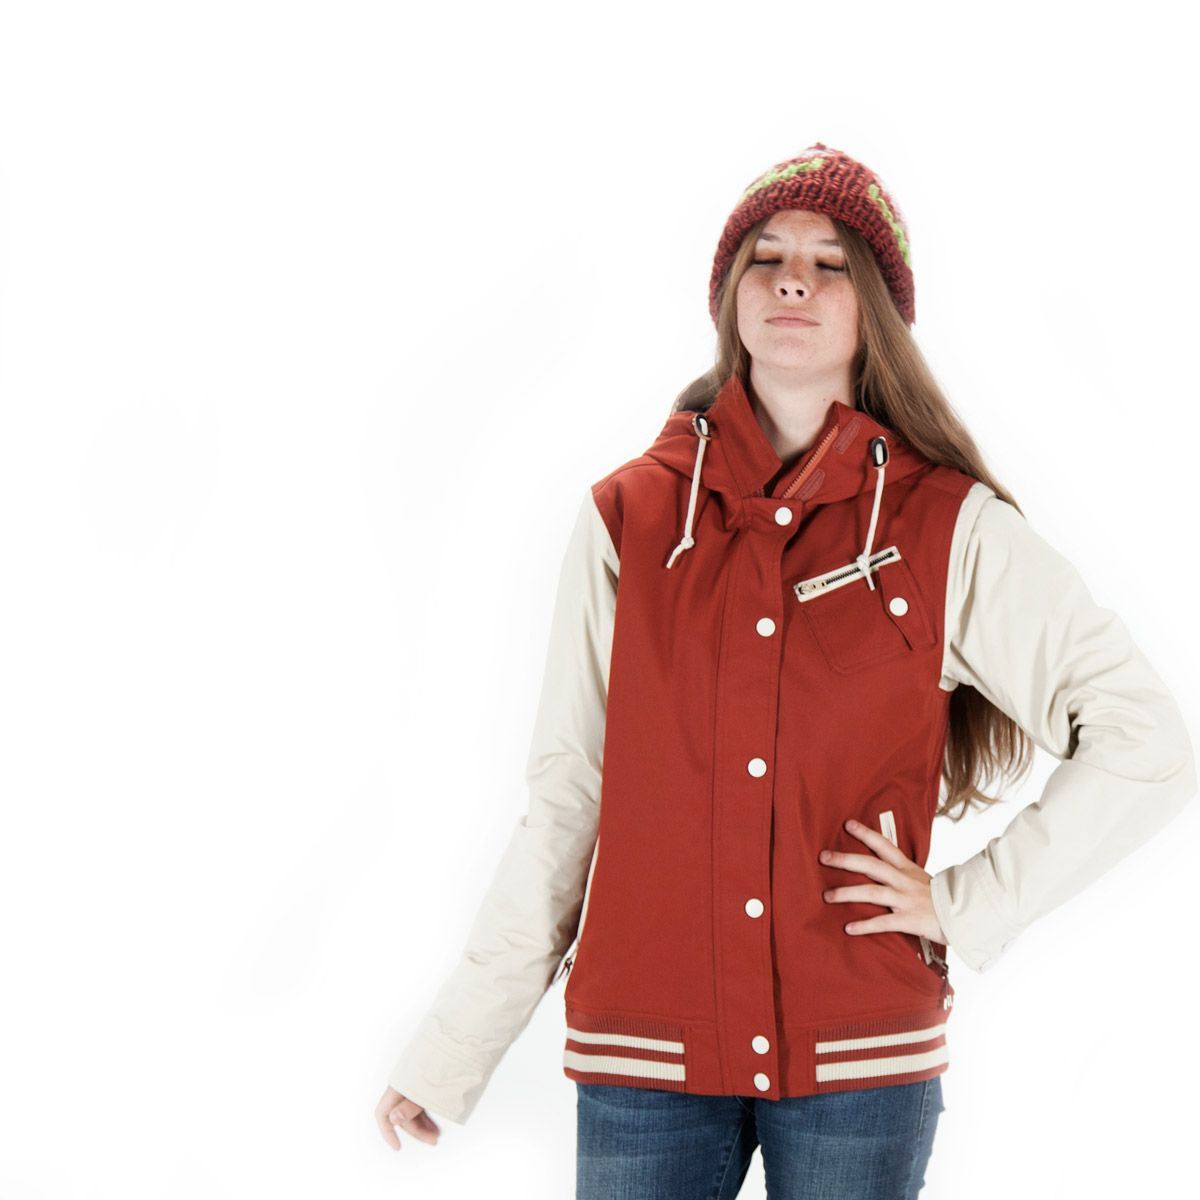 Rydell Jacket Holden Fun Winter Coat Need This In Flint Black I Think Holden Outerwear Jackets For Women Jackets [ 1200 x 1200 Pixel ]